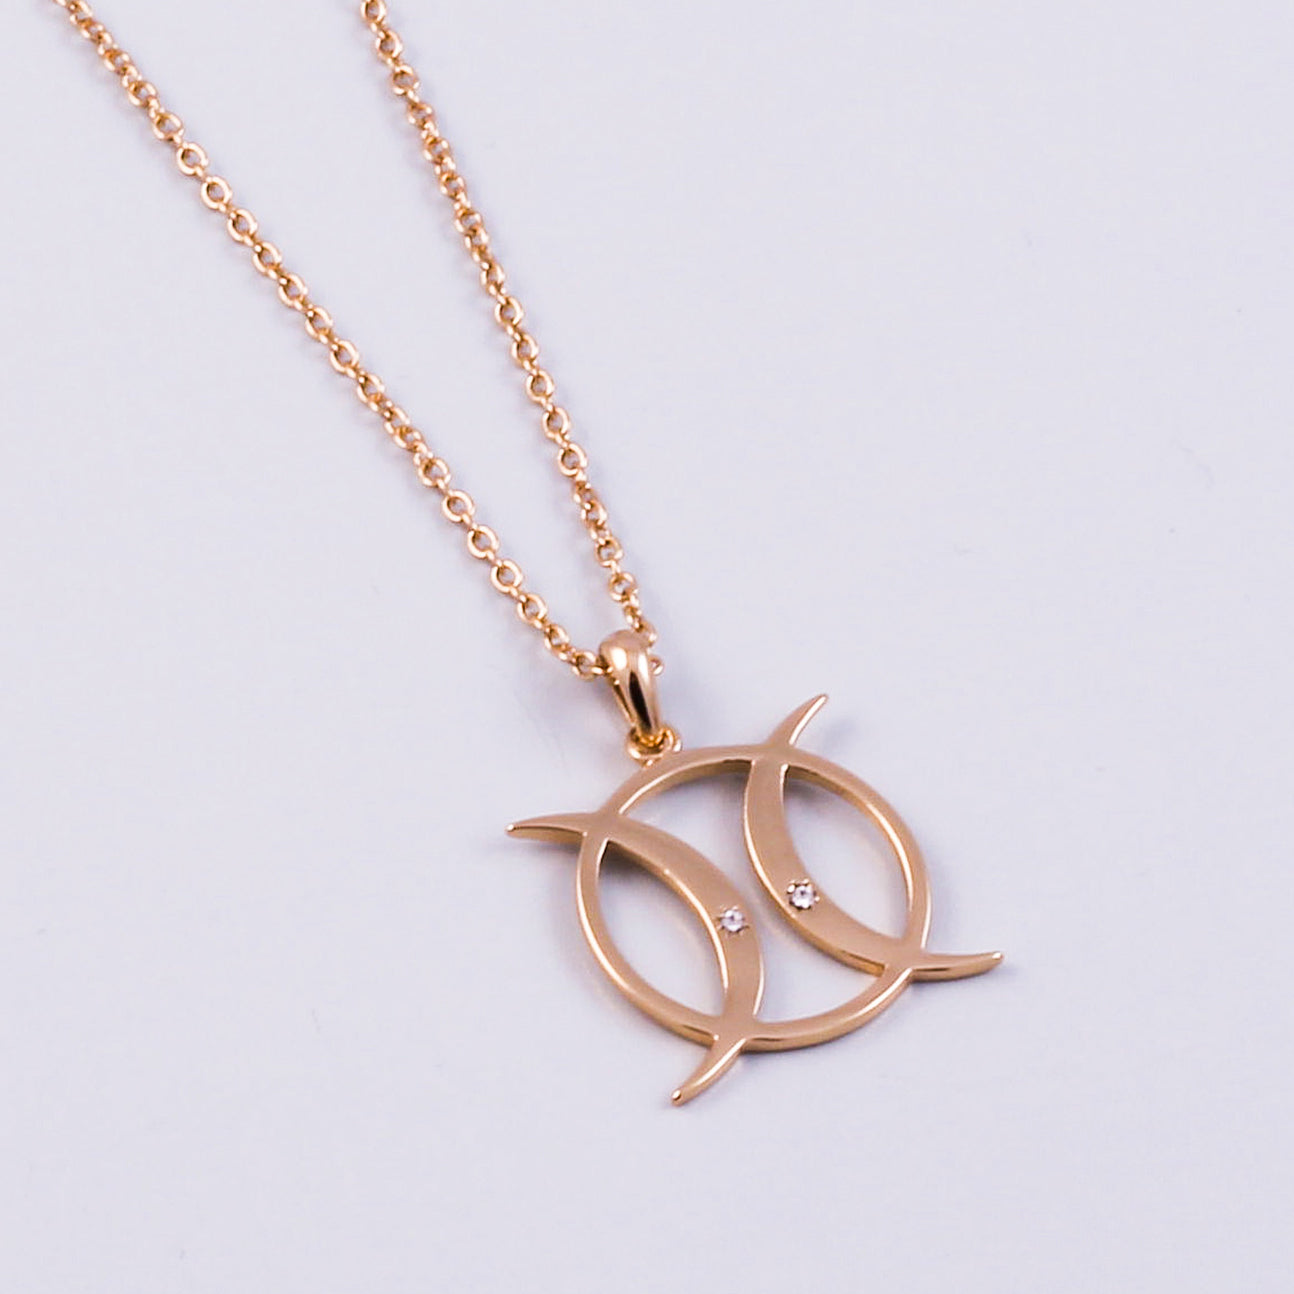 Gold Triple Moon Necklace